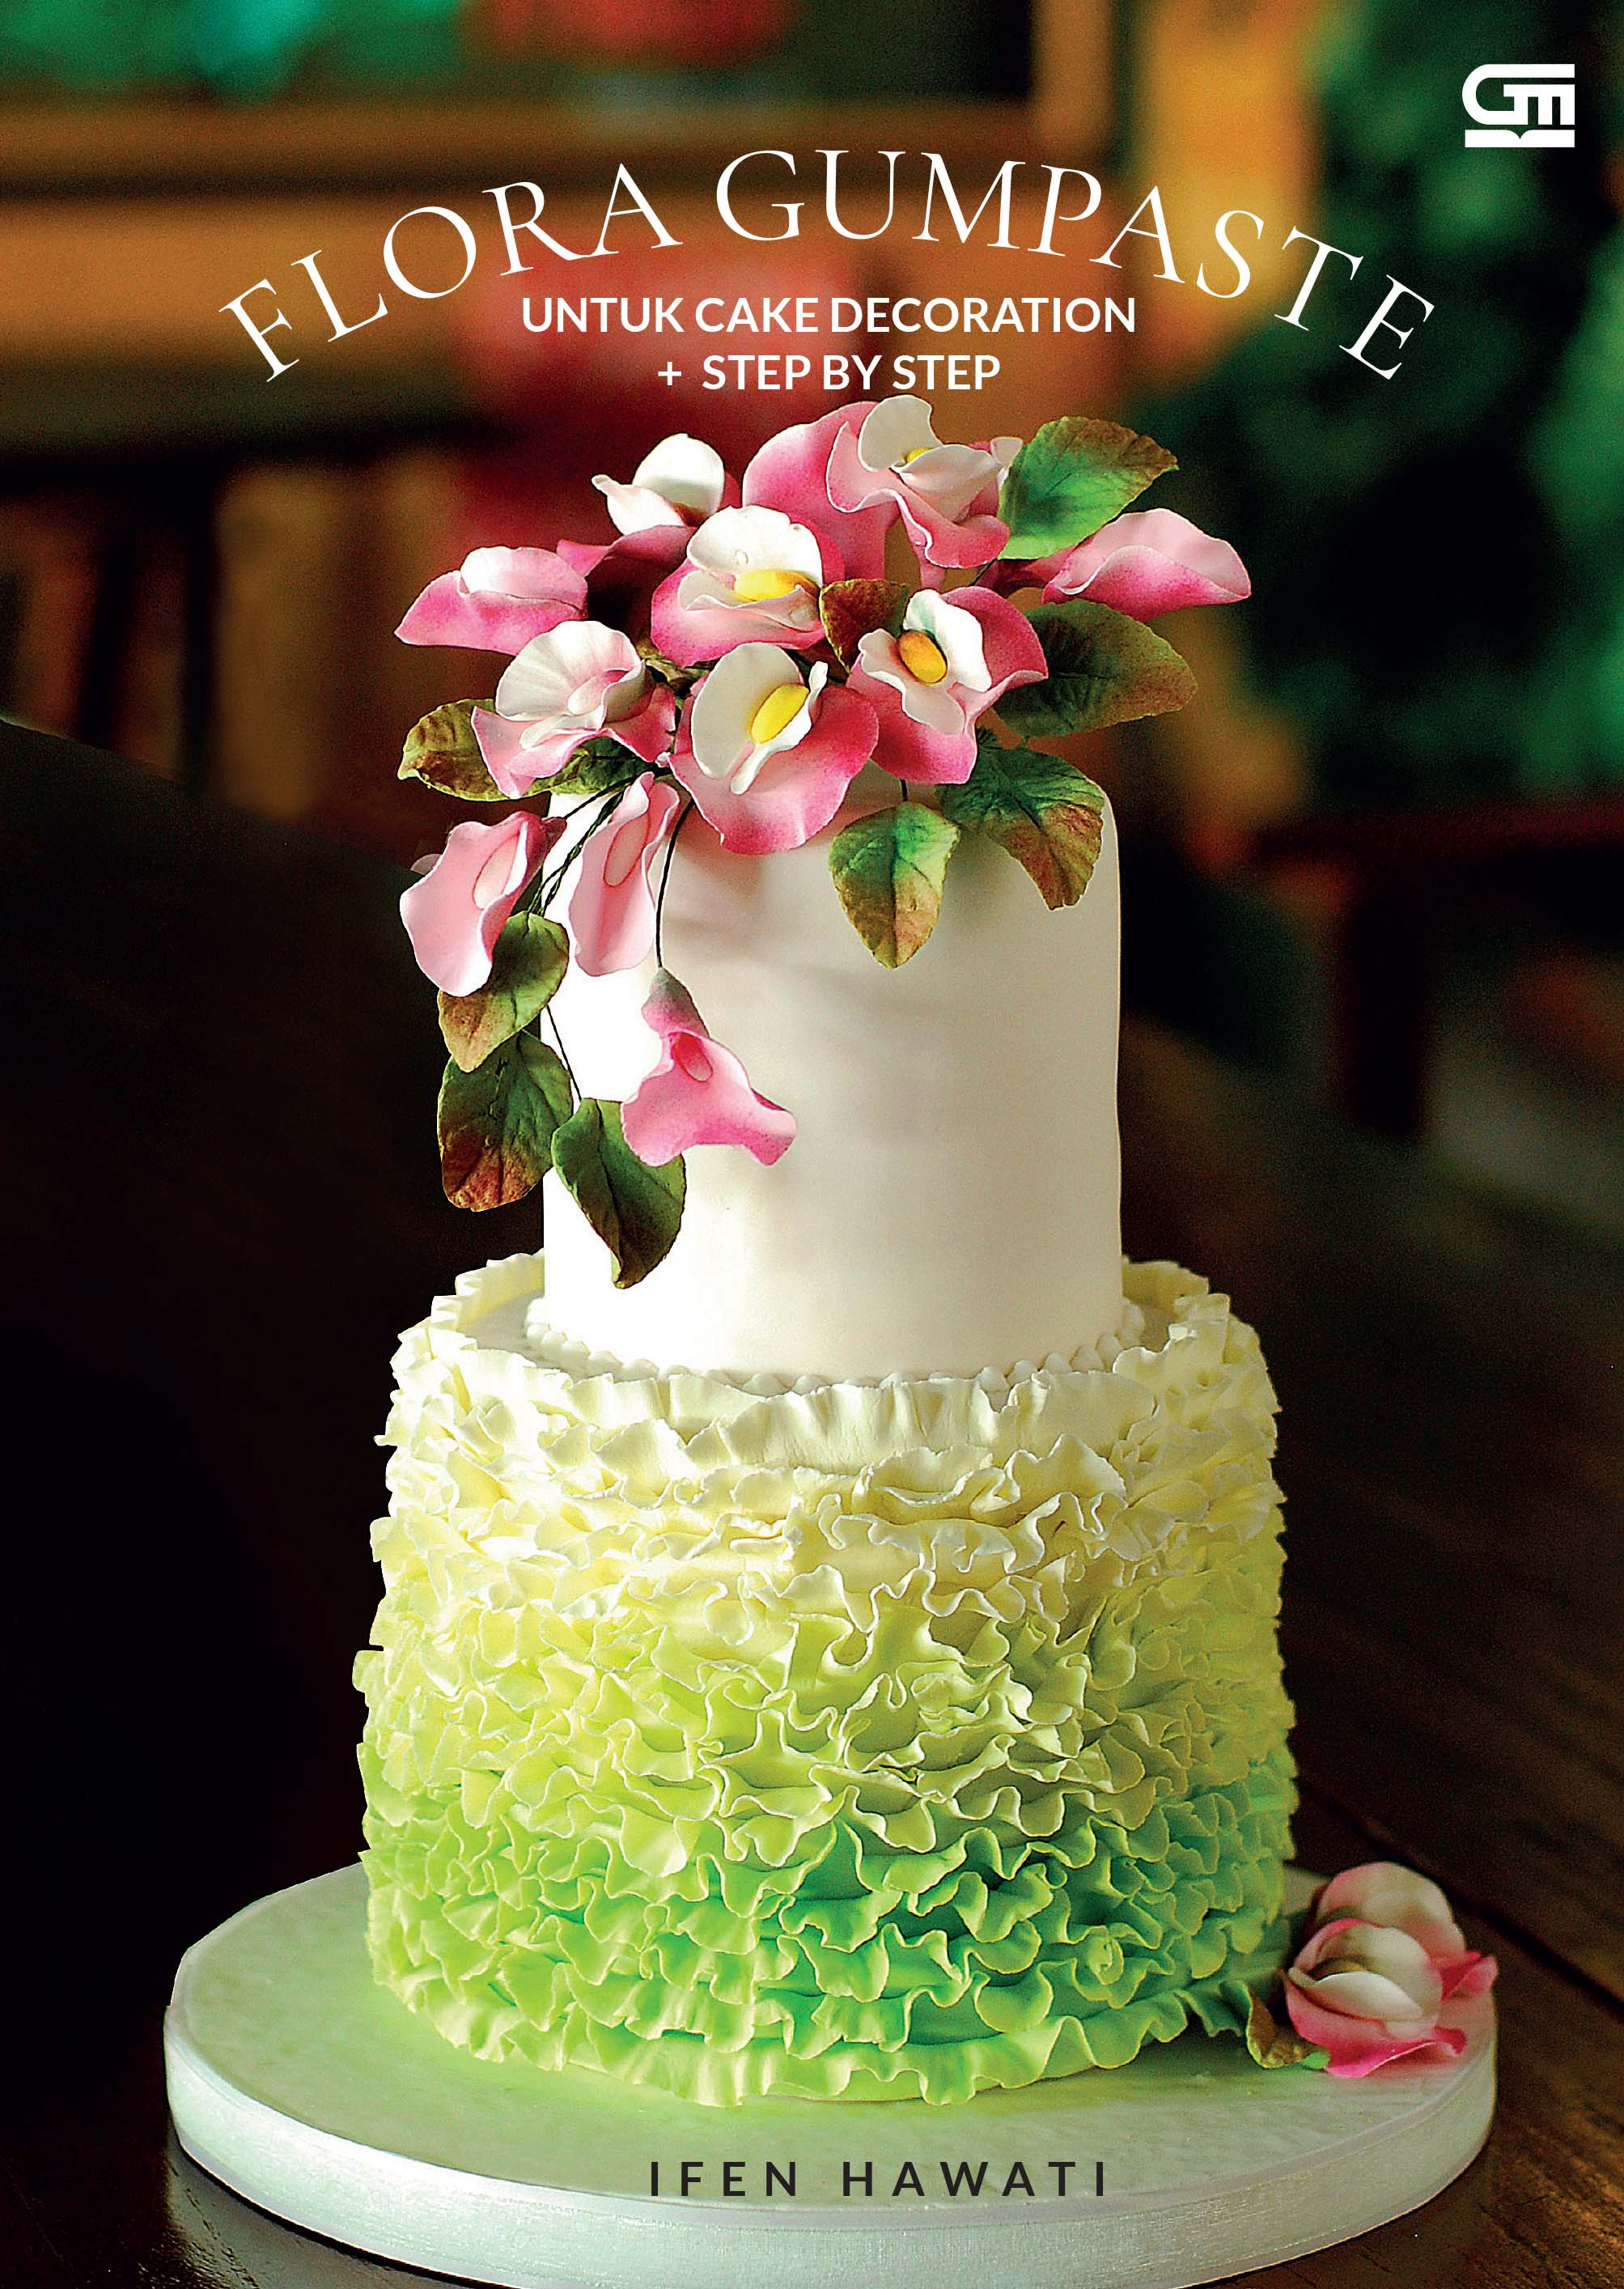 Flora Gumpaste untuk Cake Decoration: step by step